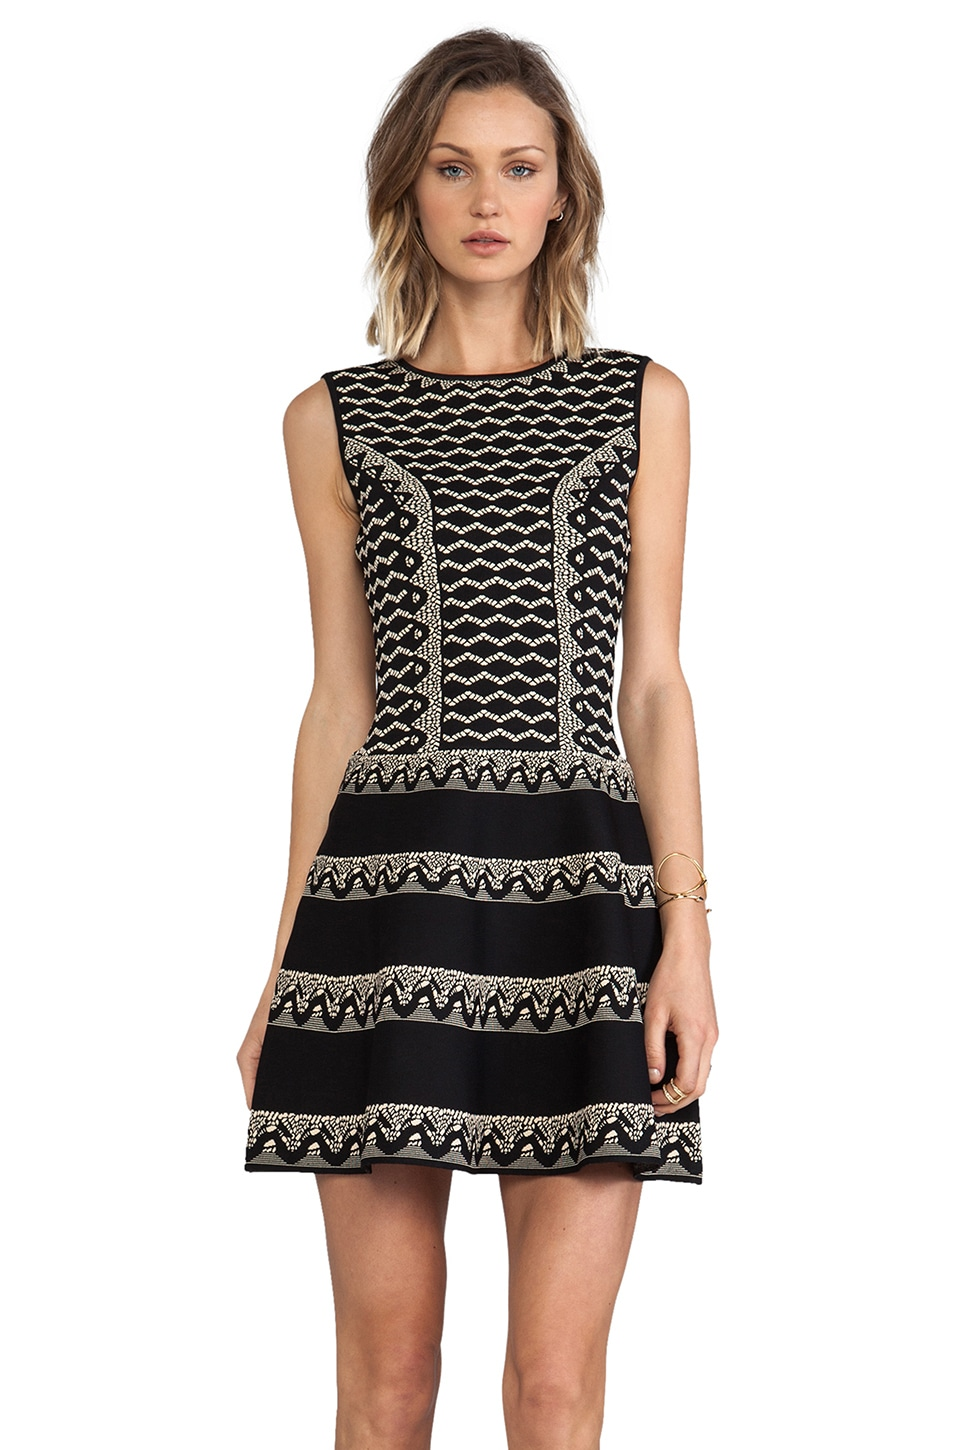 BCBGMAXAZRIA Wilma Dress in Black